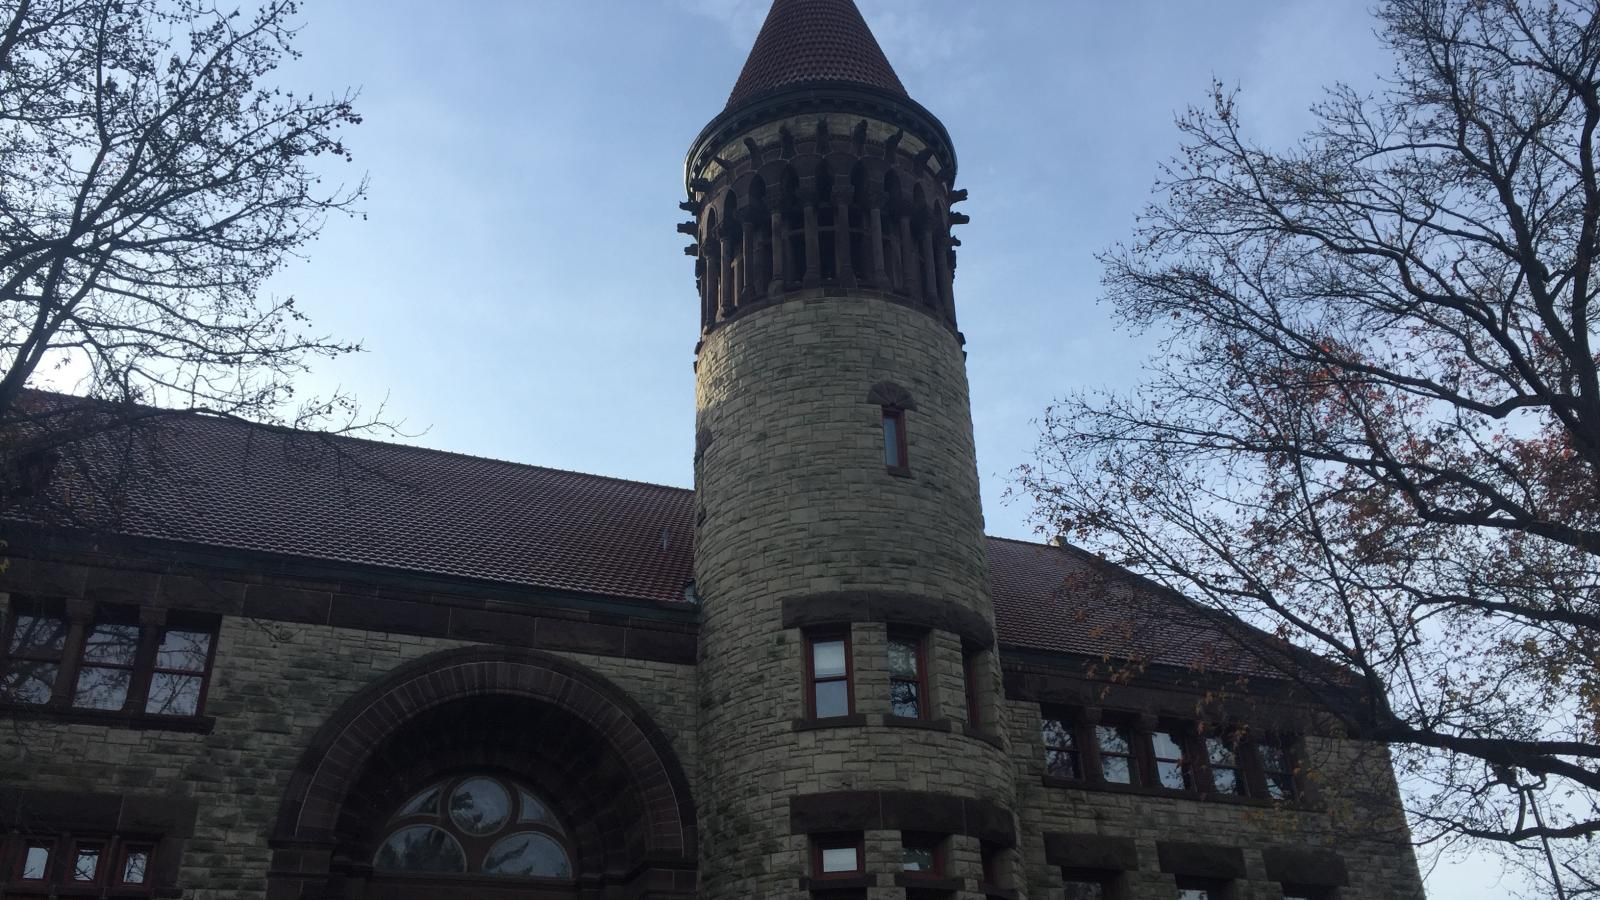 Ohio State University Campus Religion: Orton Hall Tower